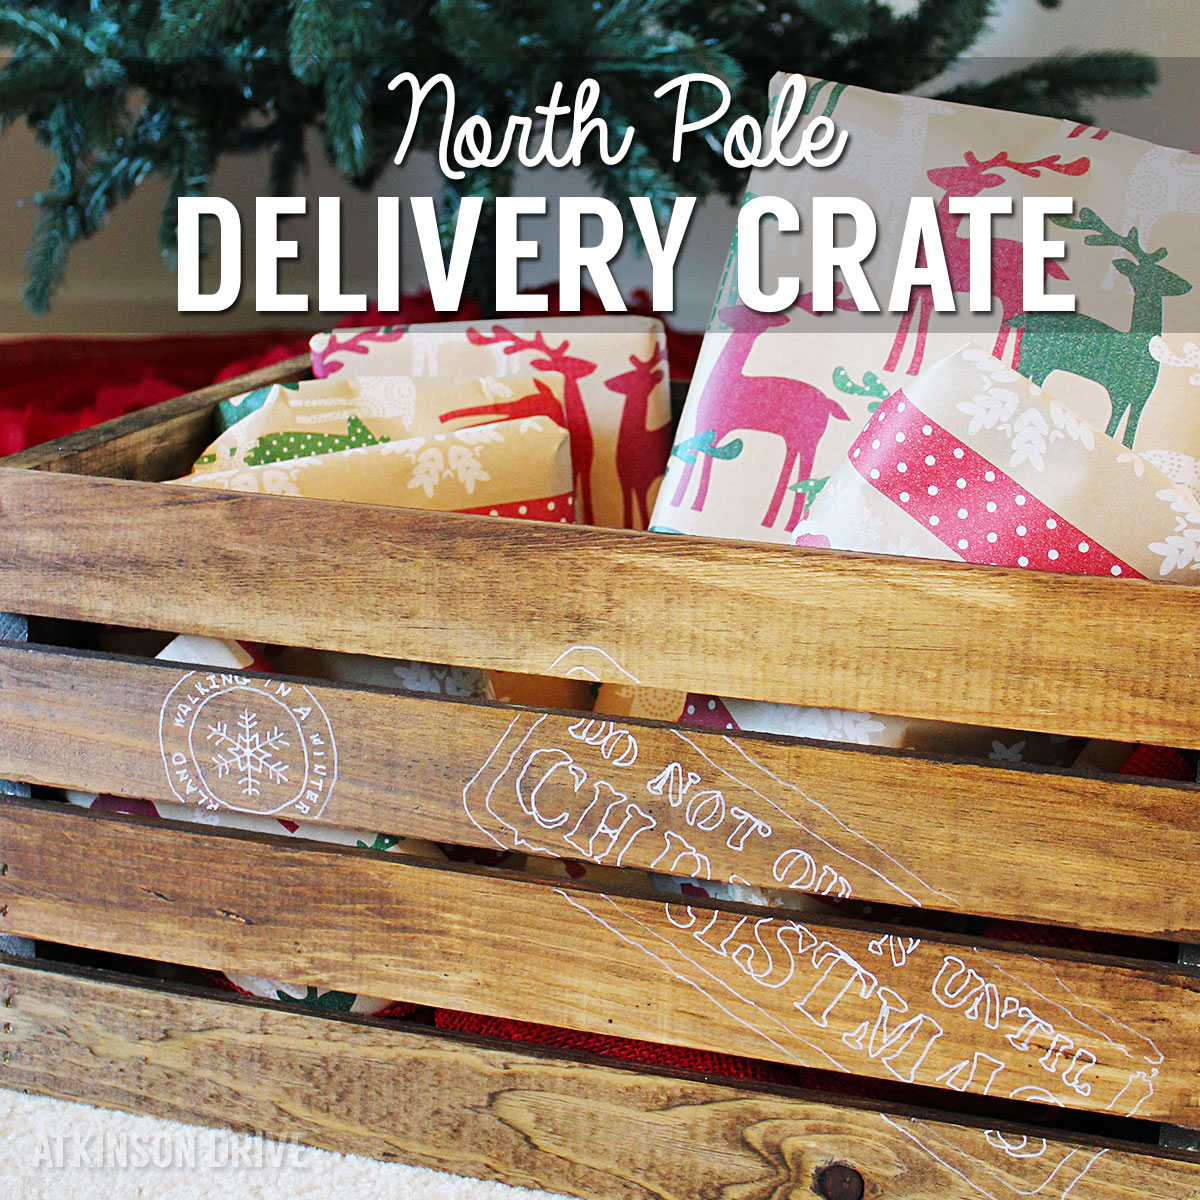 North Pole Christmas Gift Delivery Crate   Atkinson Drive